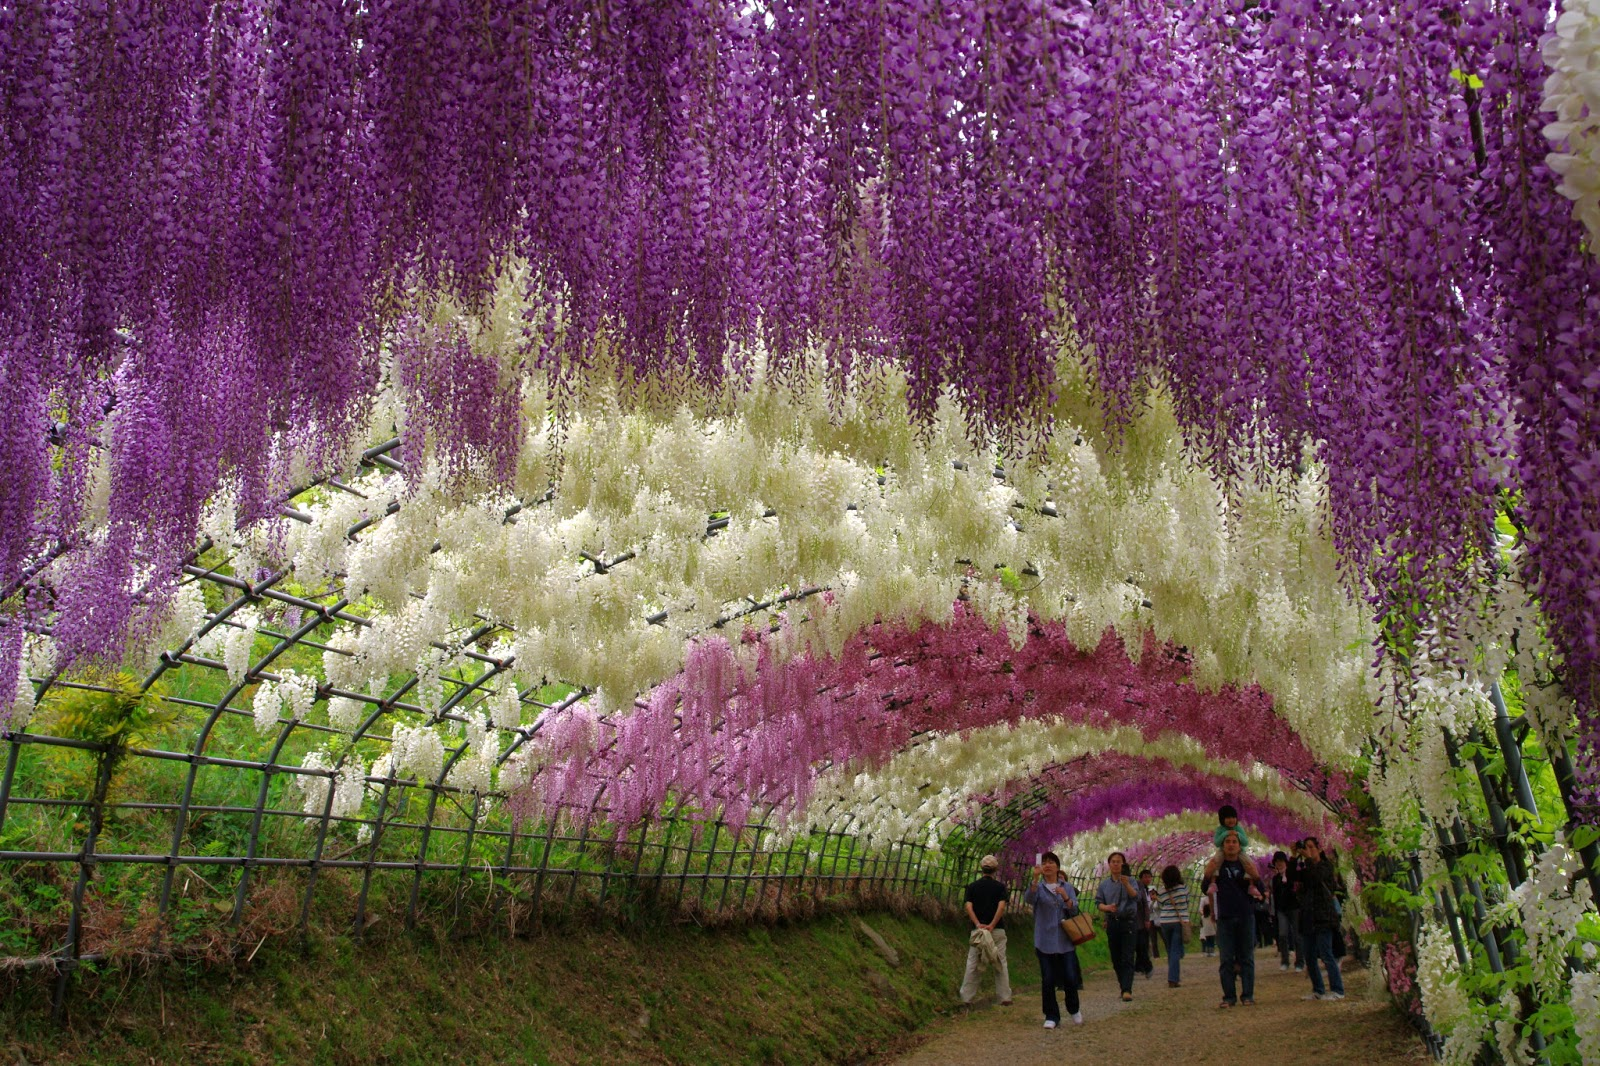 Amazing places in the world favorite asia hotel Wisteria flower tunnel path in japan